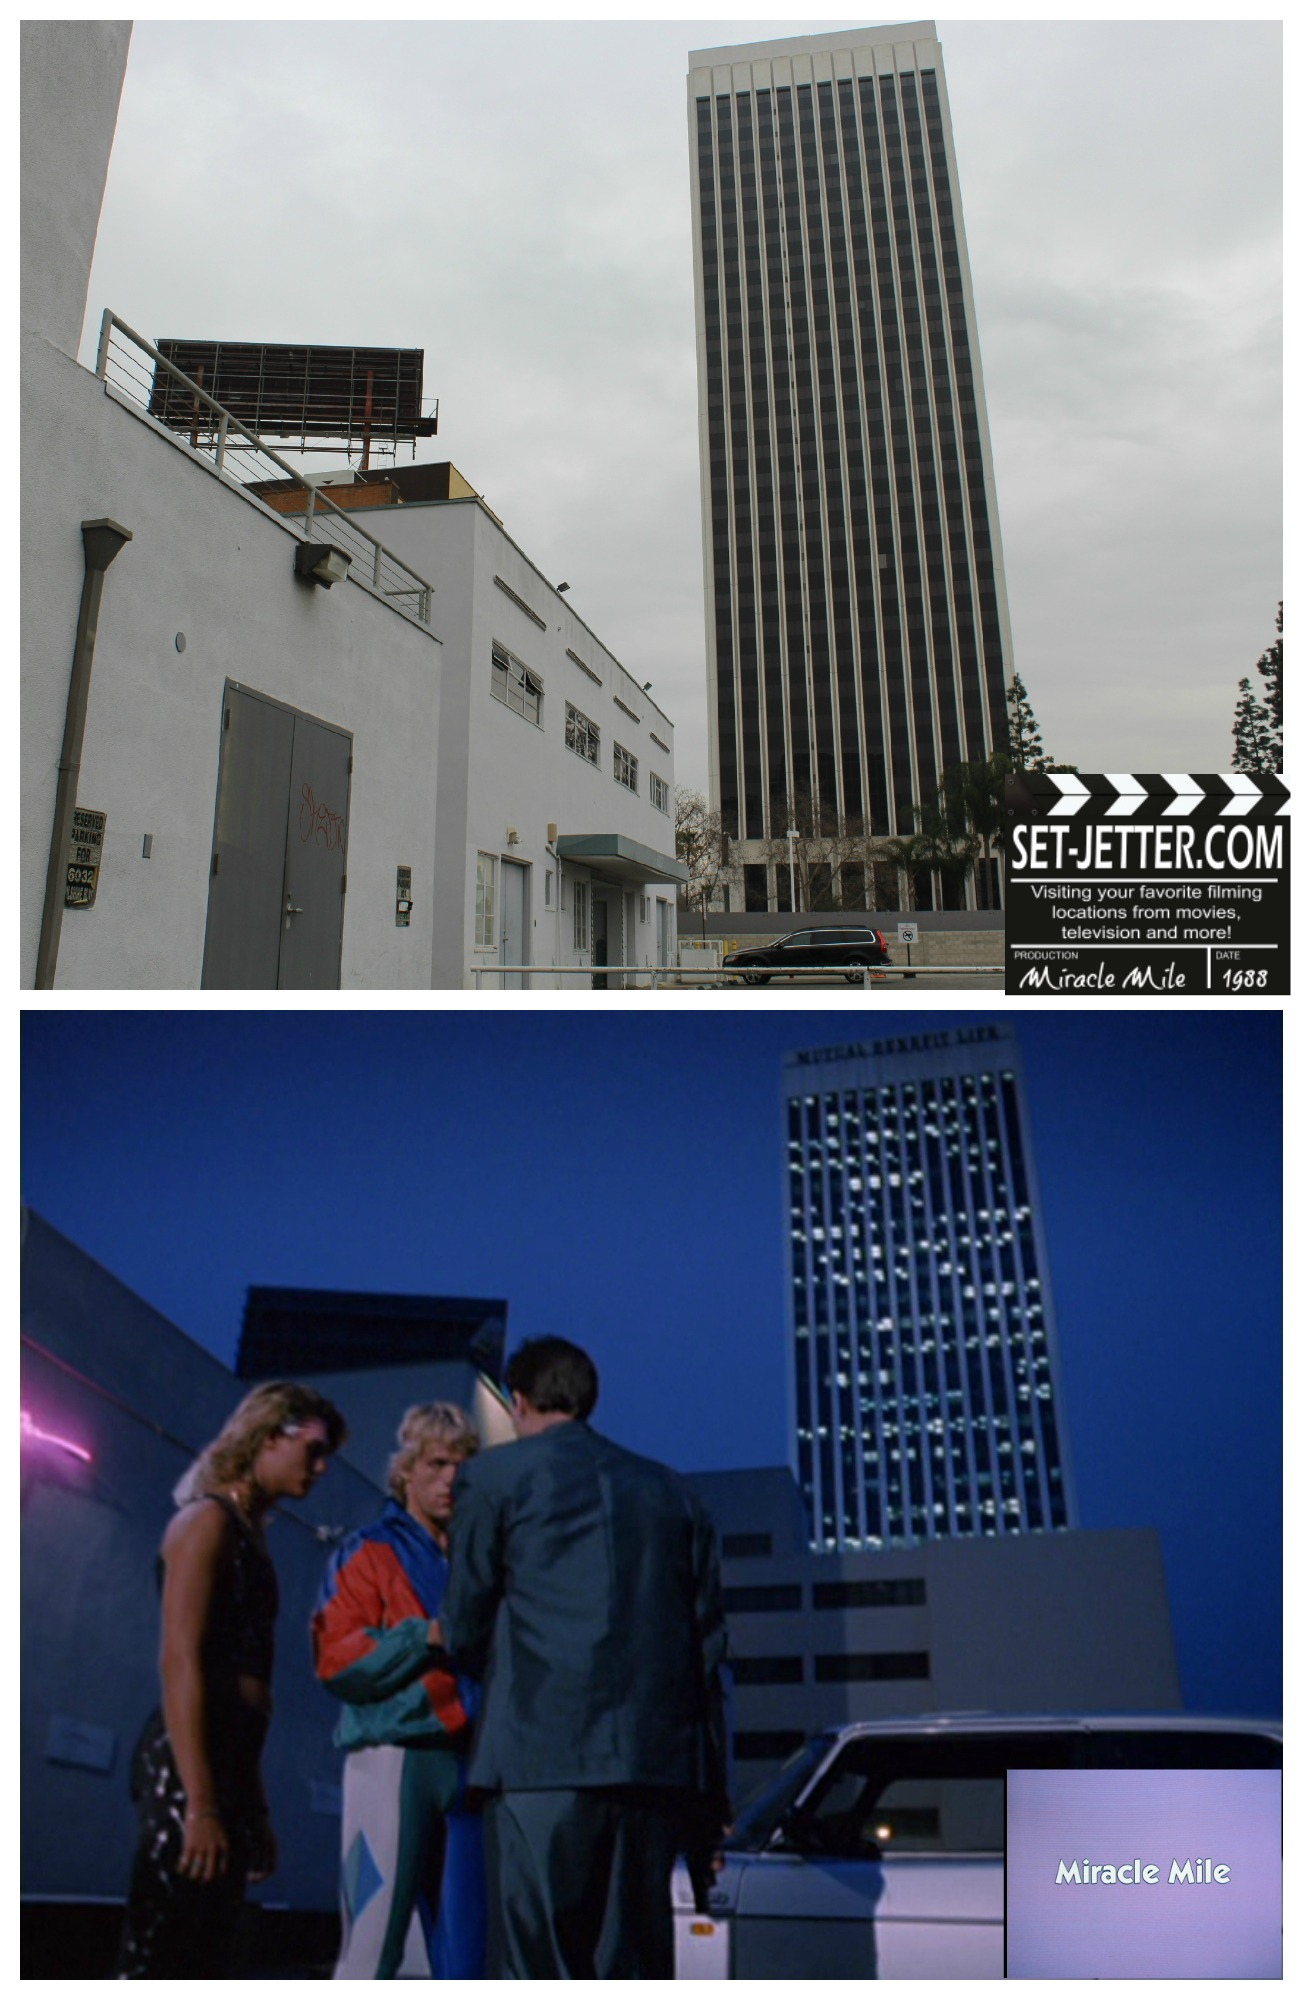 Miracle Mile comparison 20.jpg